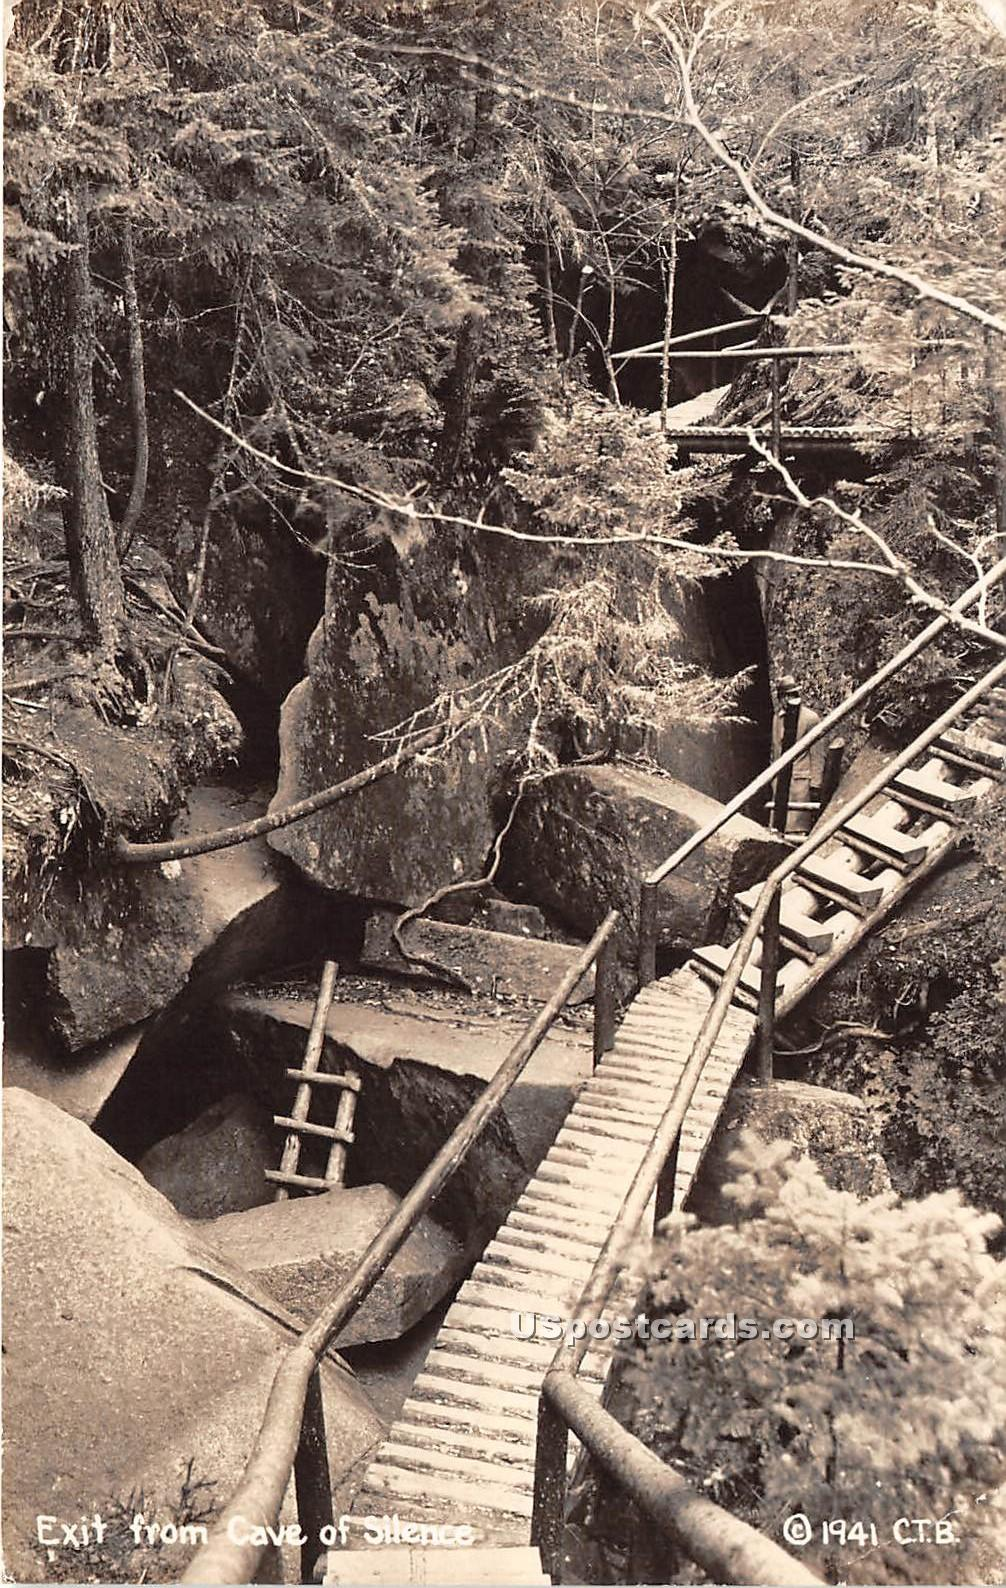 Exit From Cave of Silence - Lost River Gorge, Vermont VT Postcard